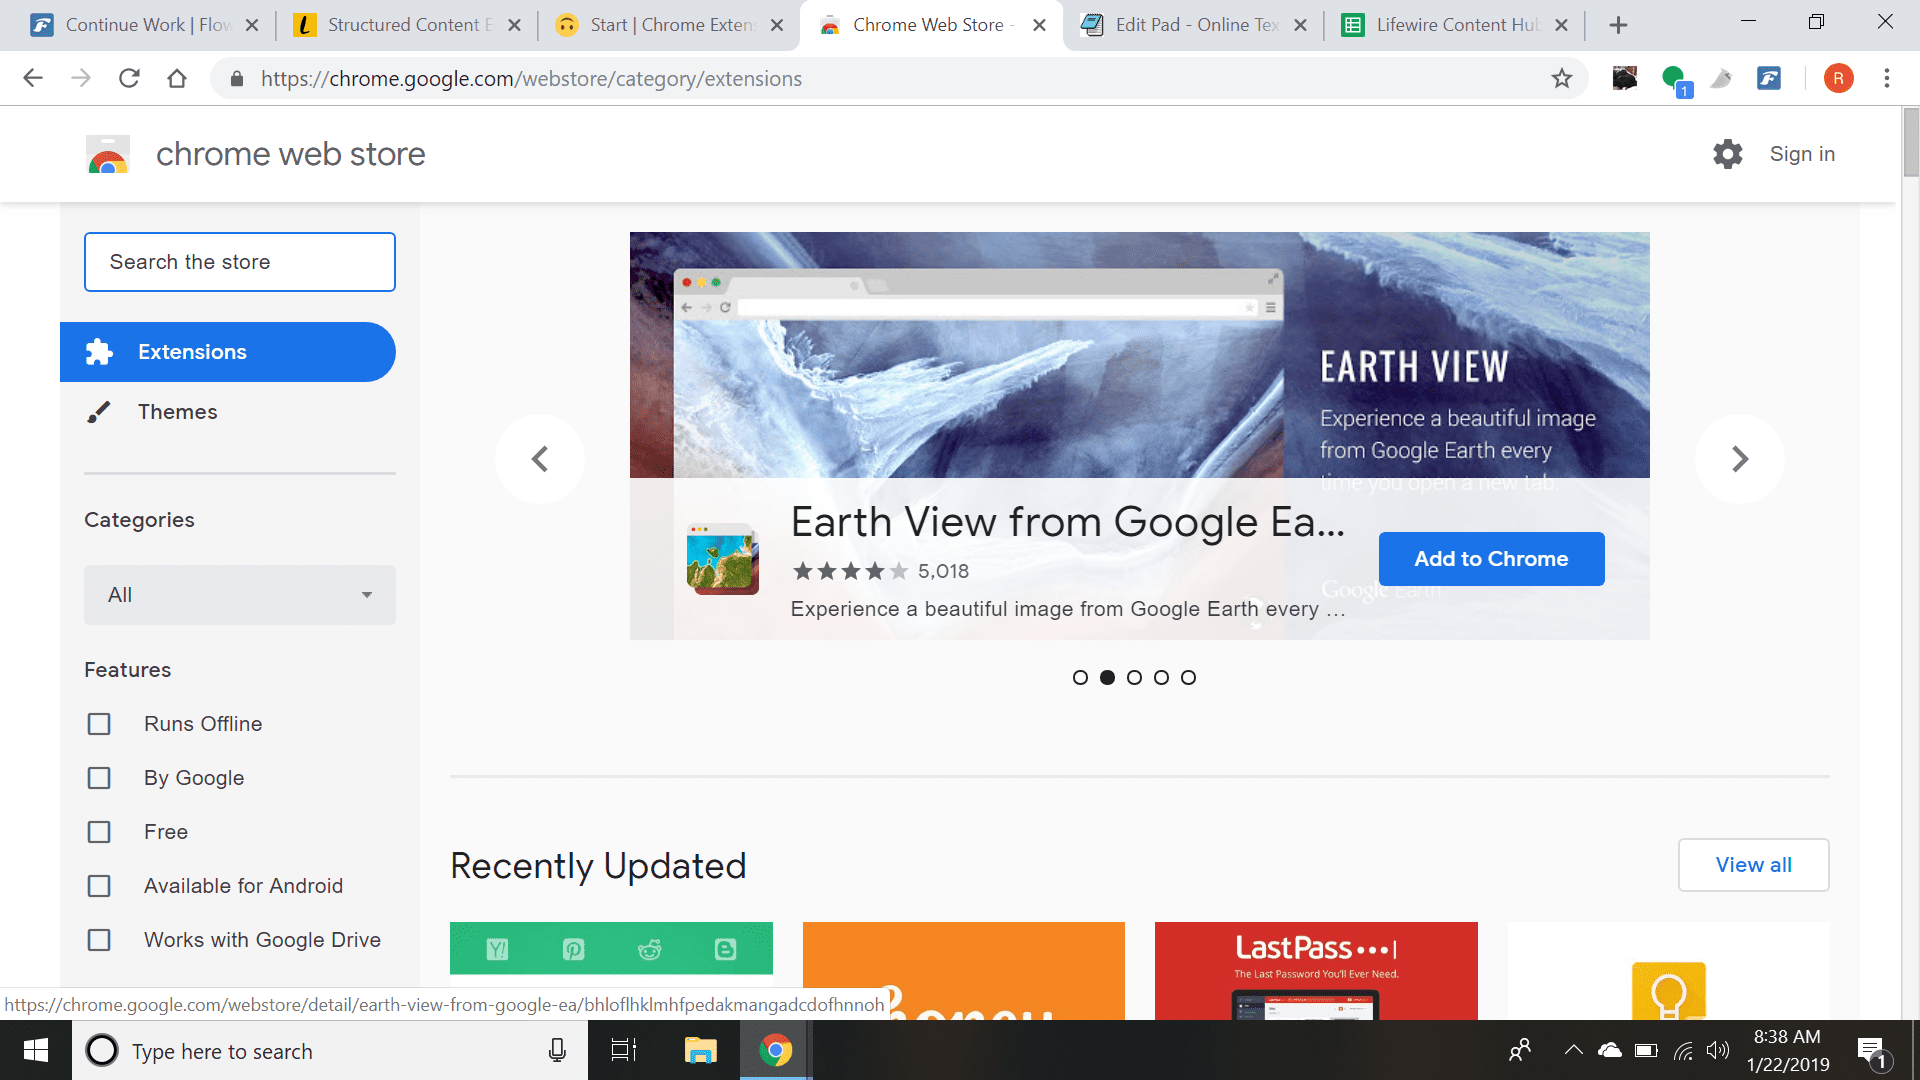 chrome extension download them all